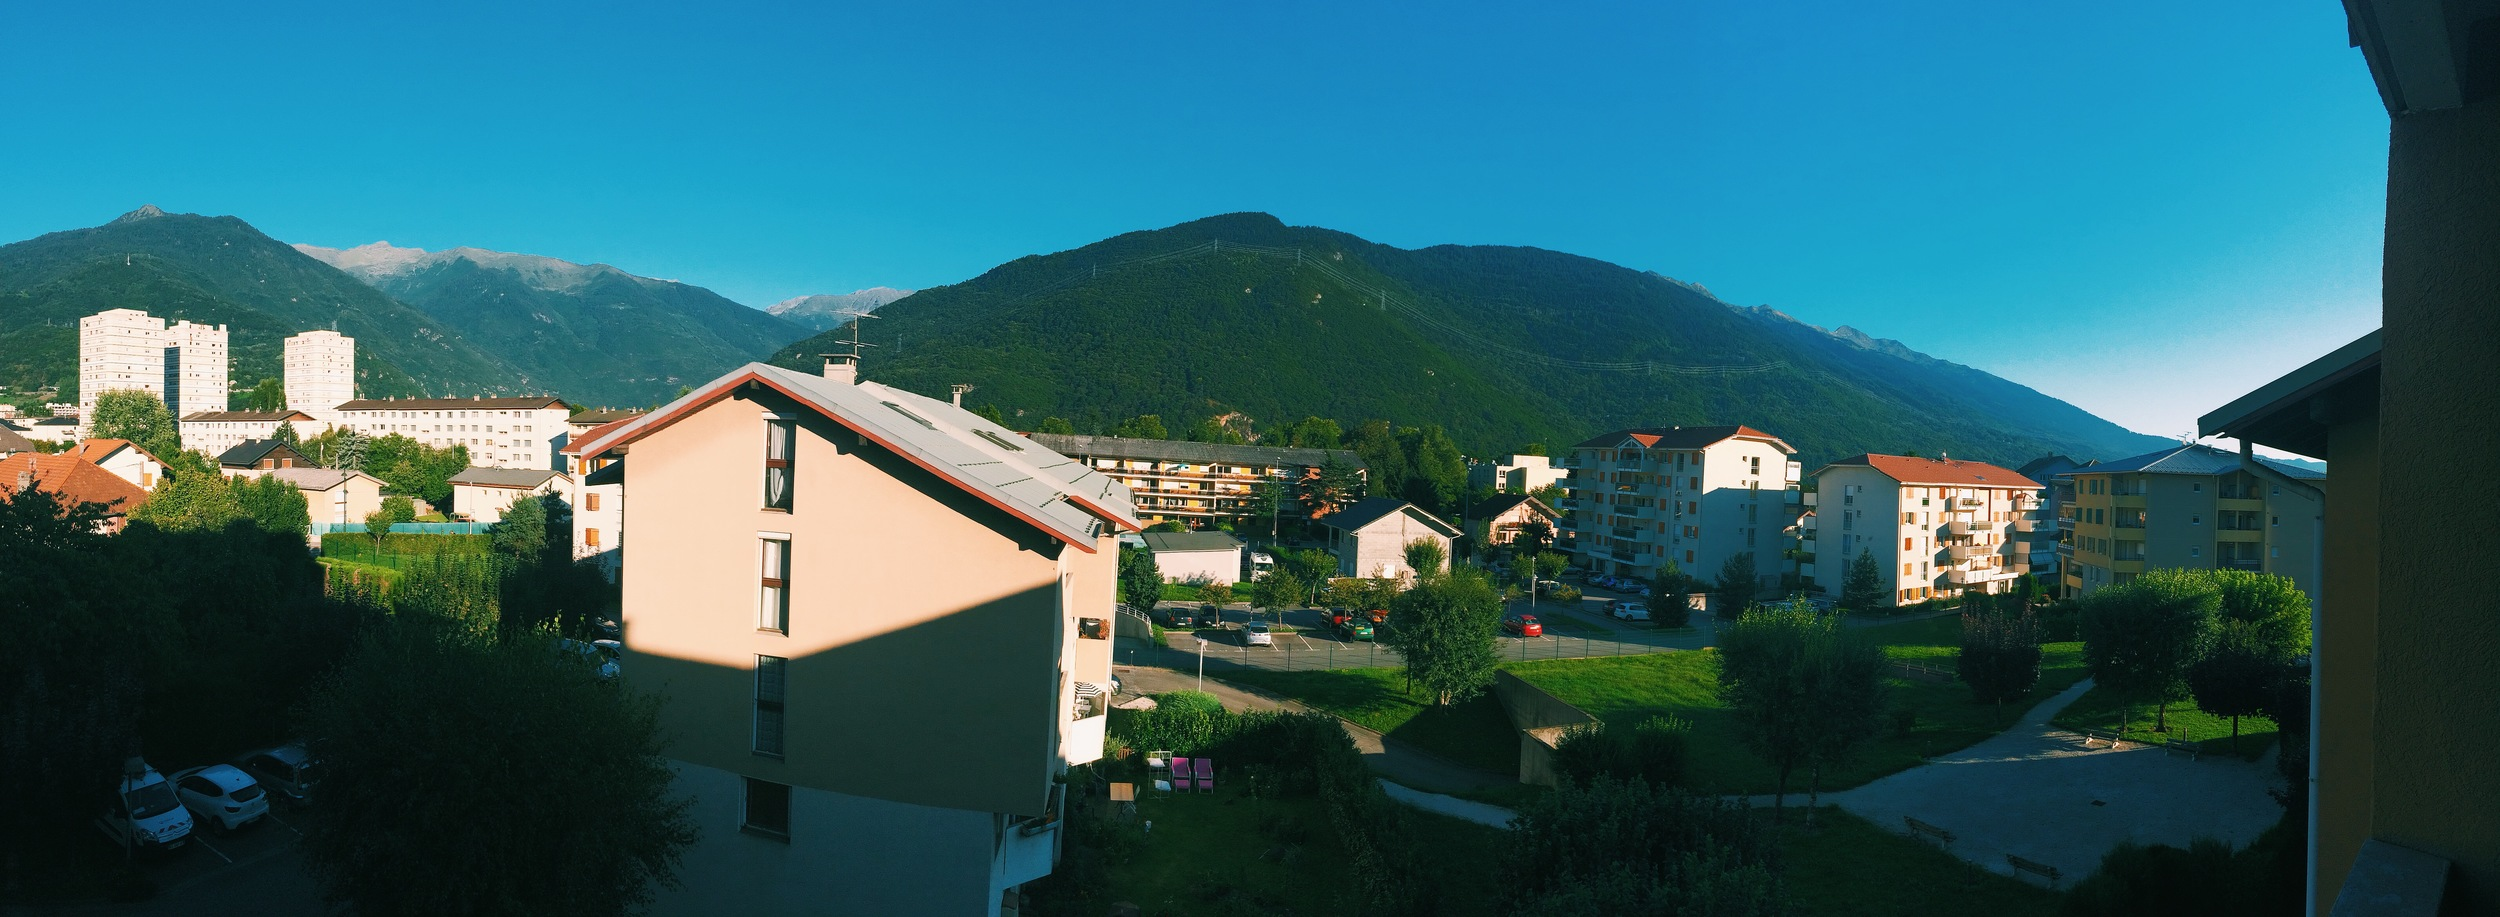 The view from our balcony.